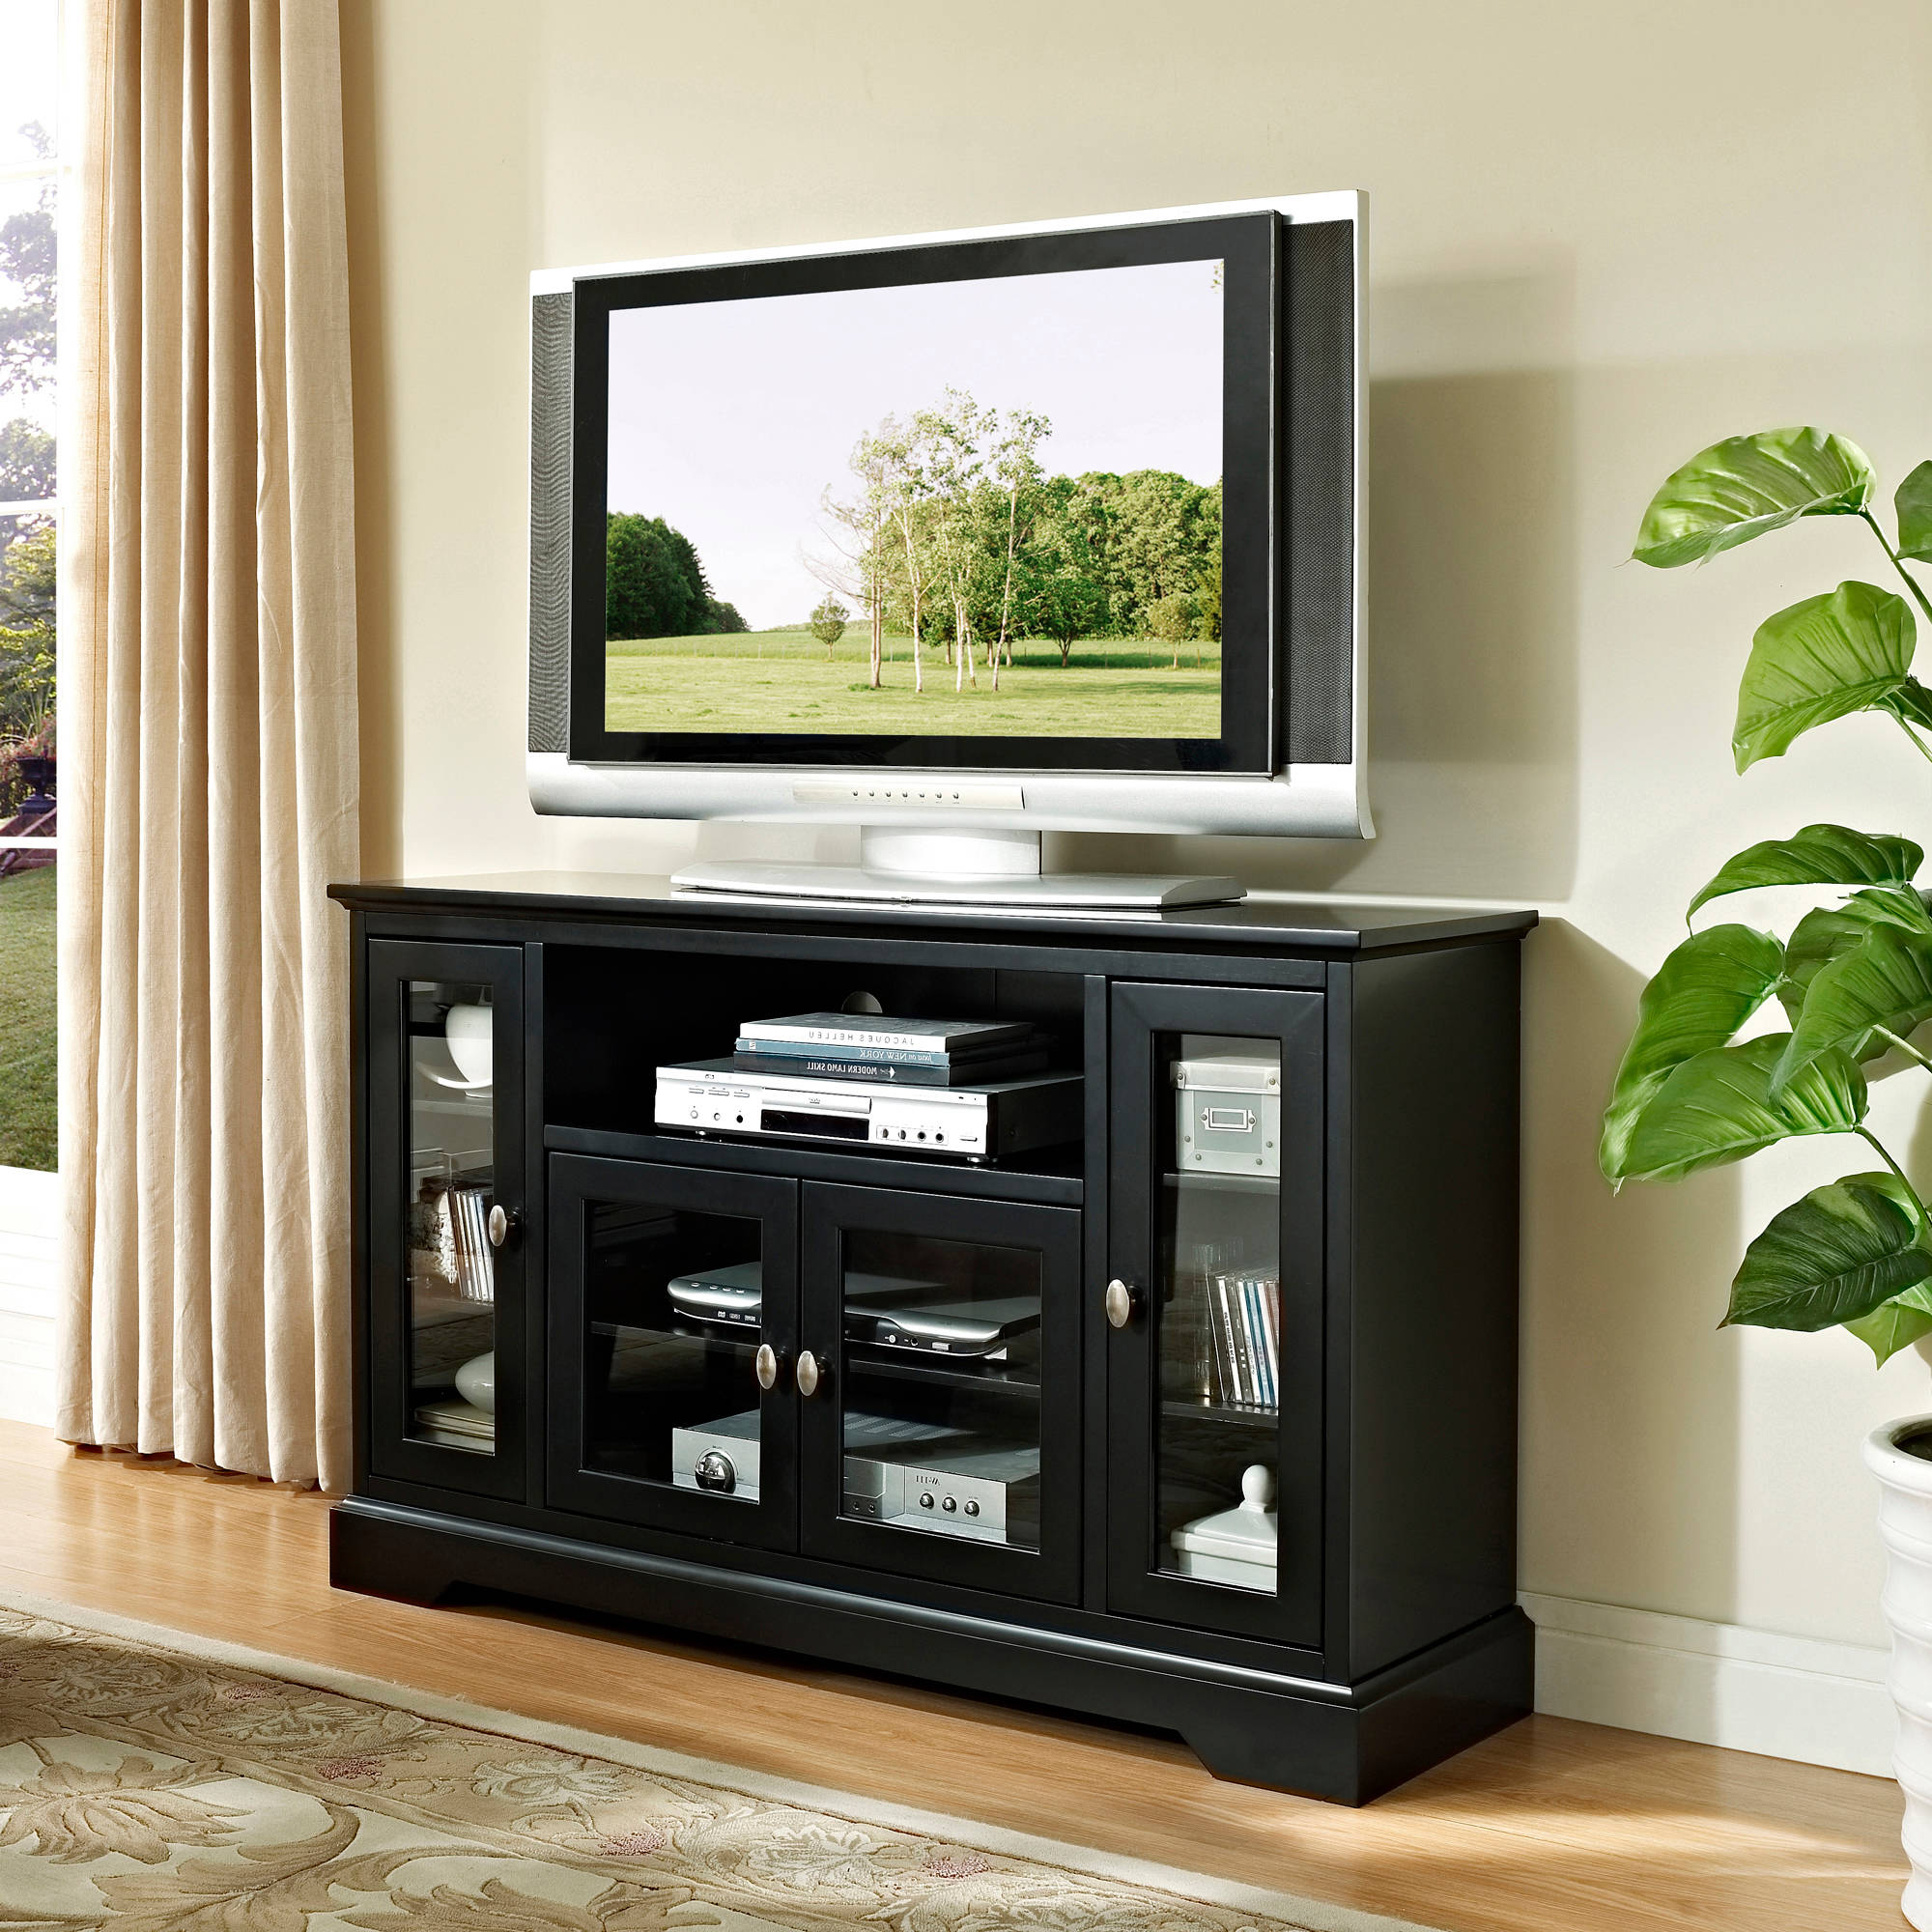 Walker Edison Highboy Style Wood Media Storage Tv Stand Console For With Regard To Famous Dark Wood Tv Stands (View 17 of 20)